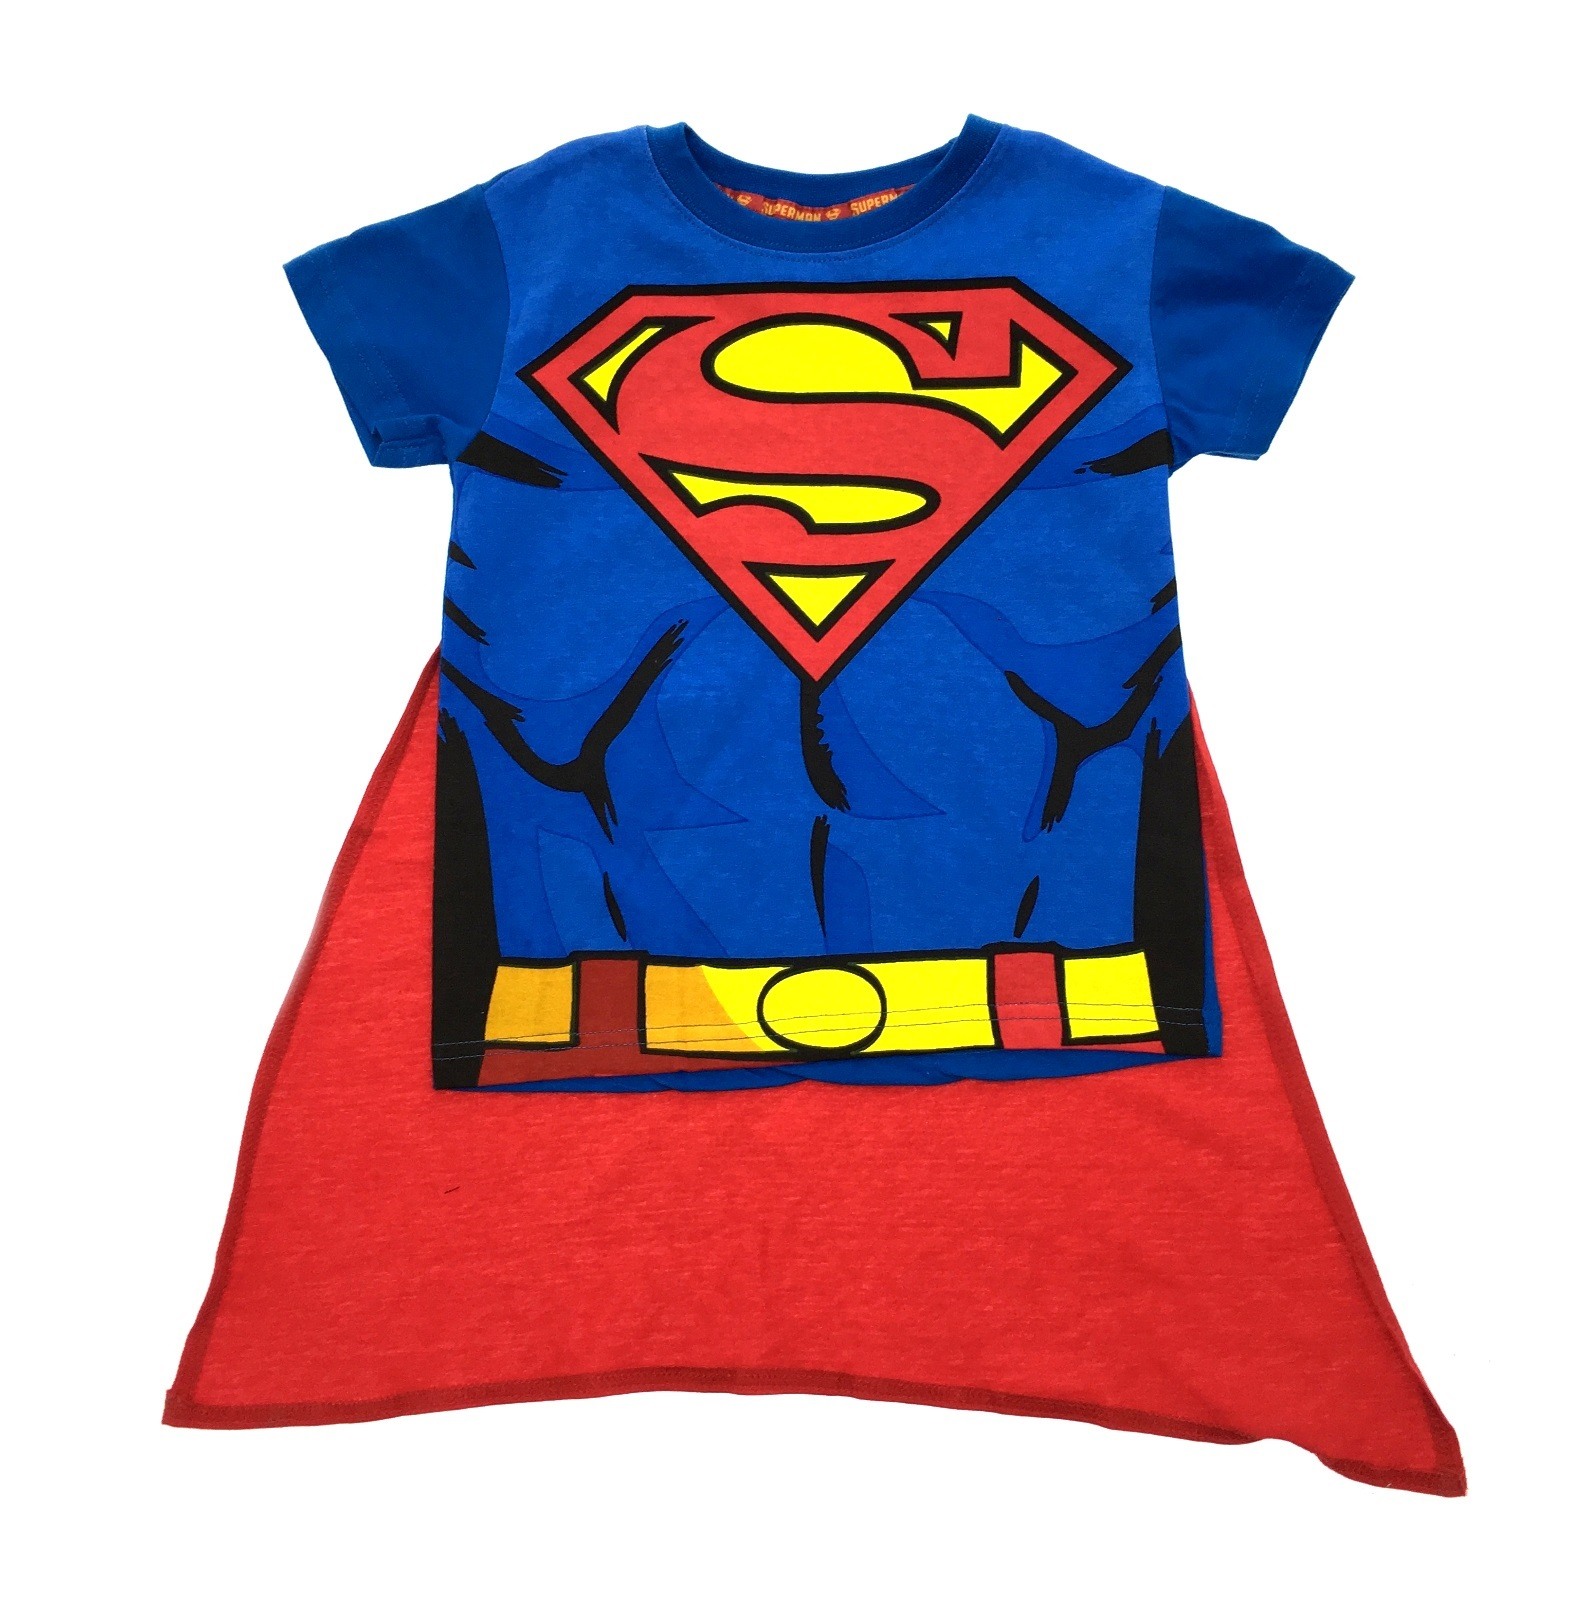 Find great deals on eBay for boy shirt with cape. Shop with confidence.